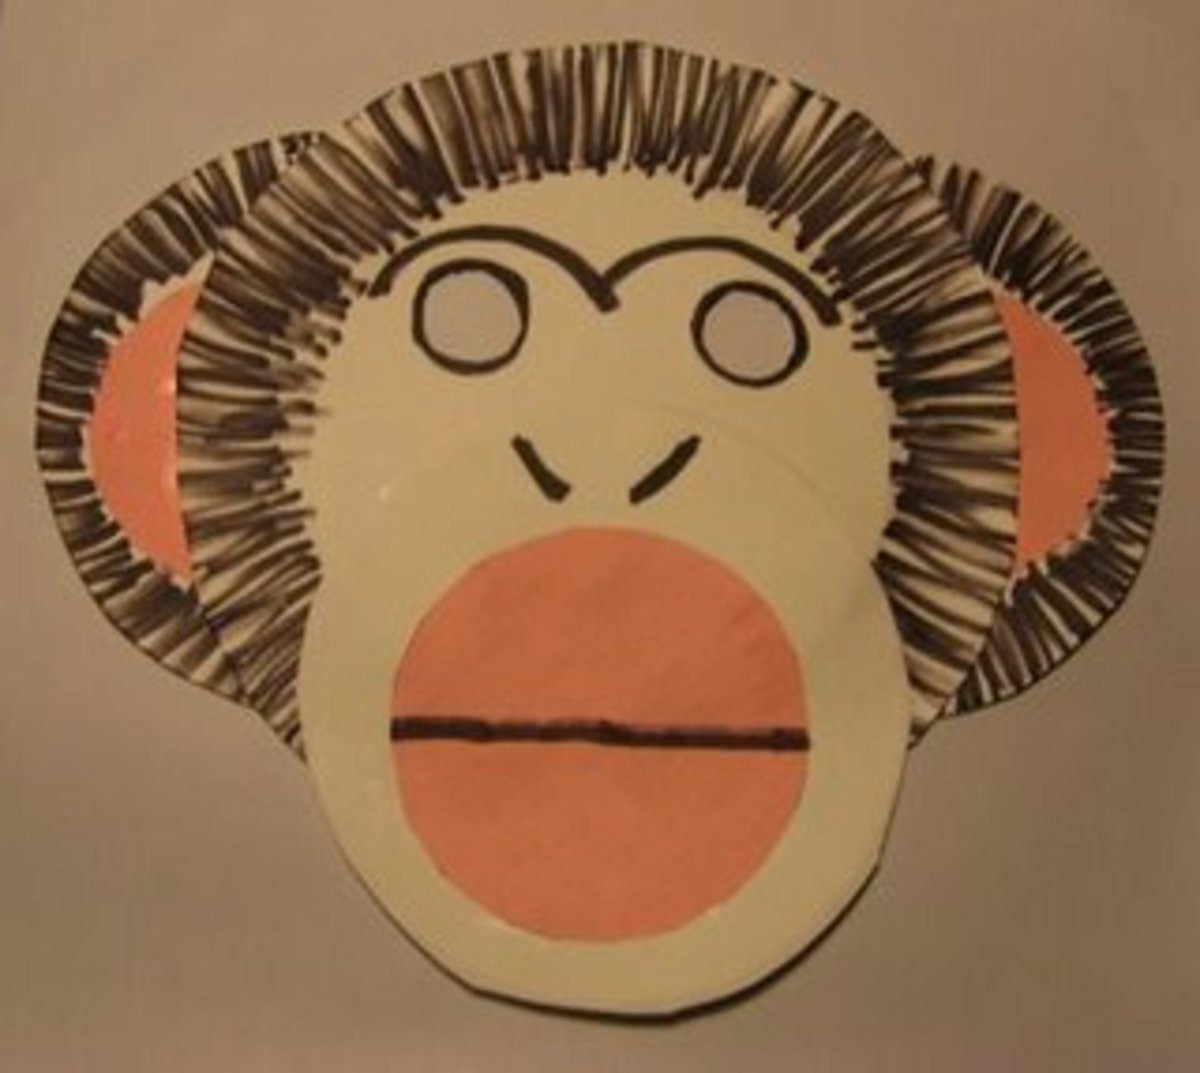 Overlapping paper plates can make more complex shapes like this monkey.